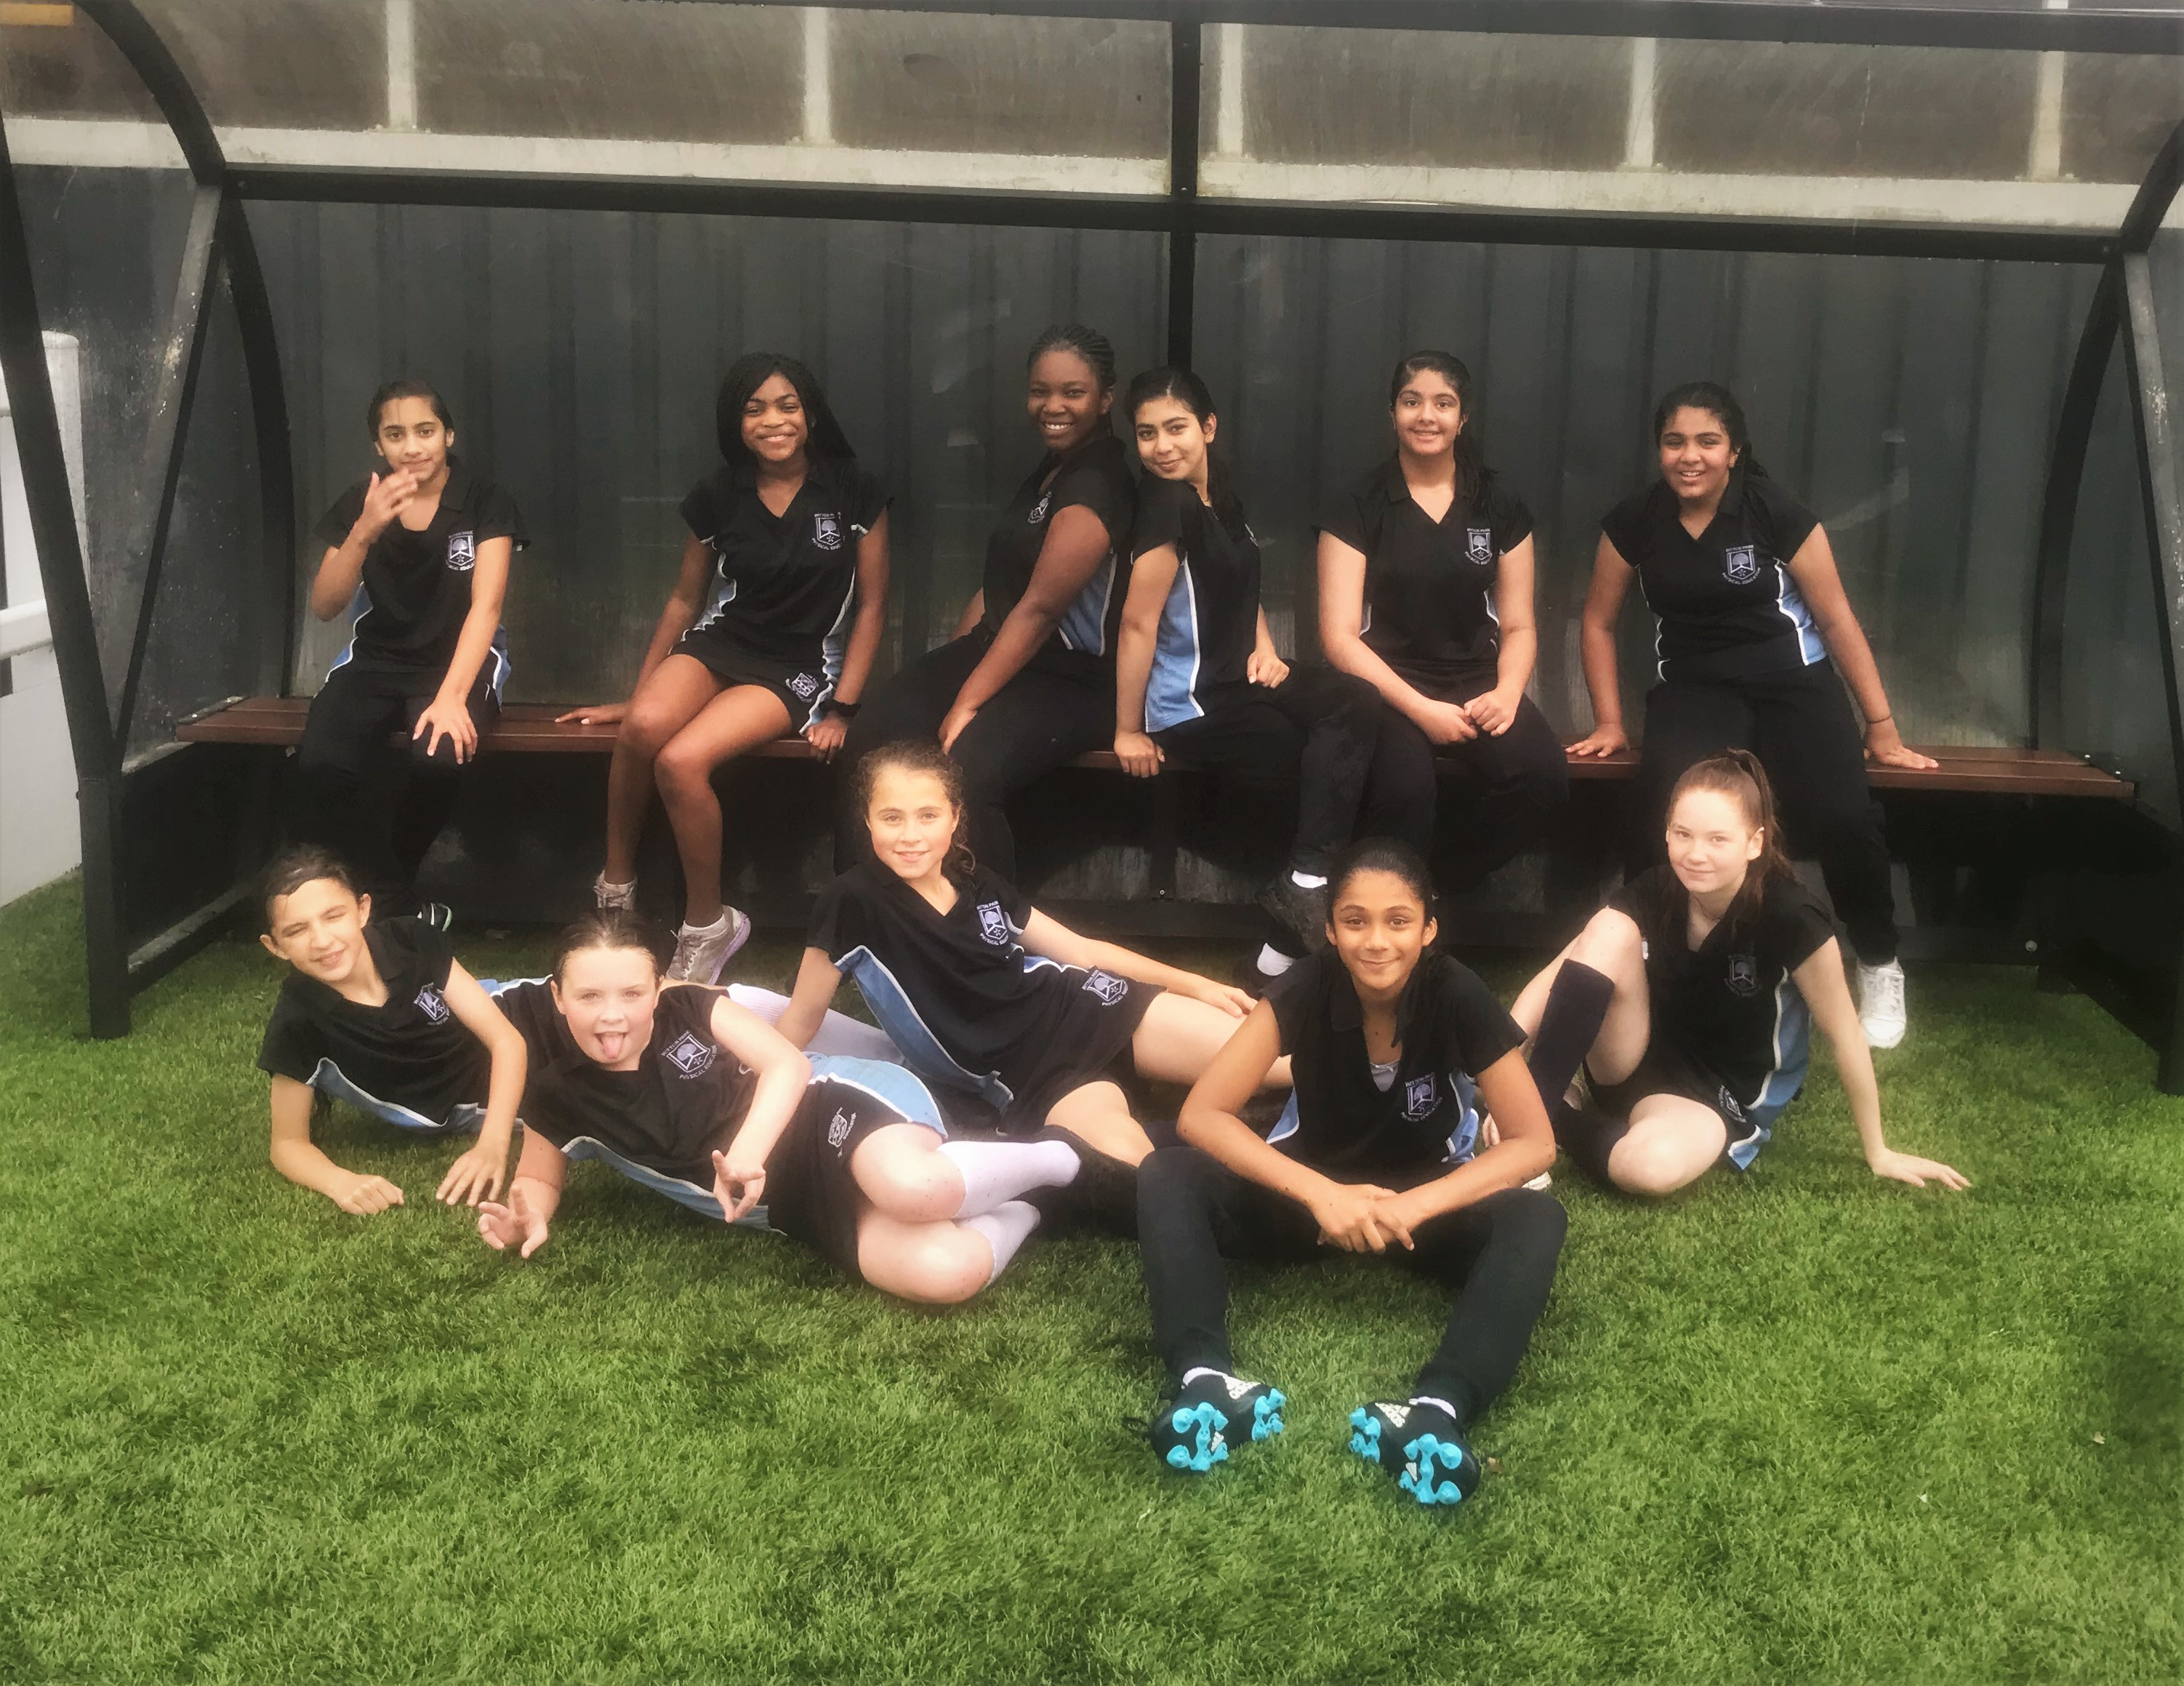 U13 Girls Rugby team competition